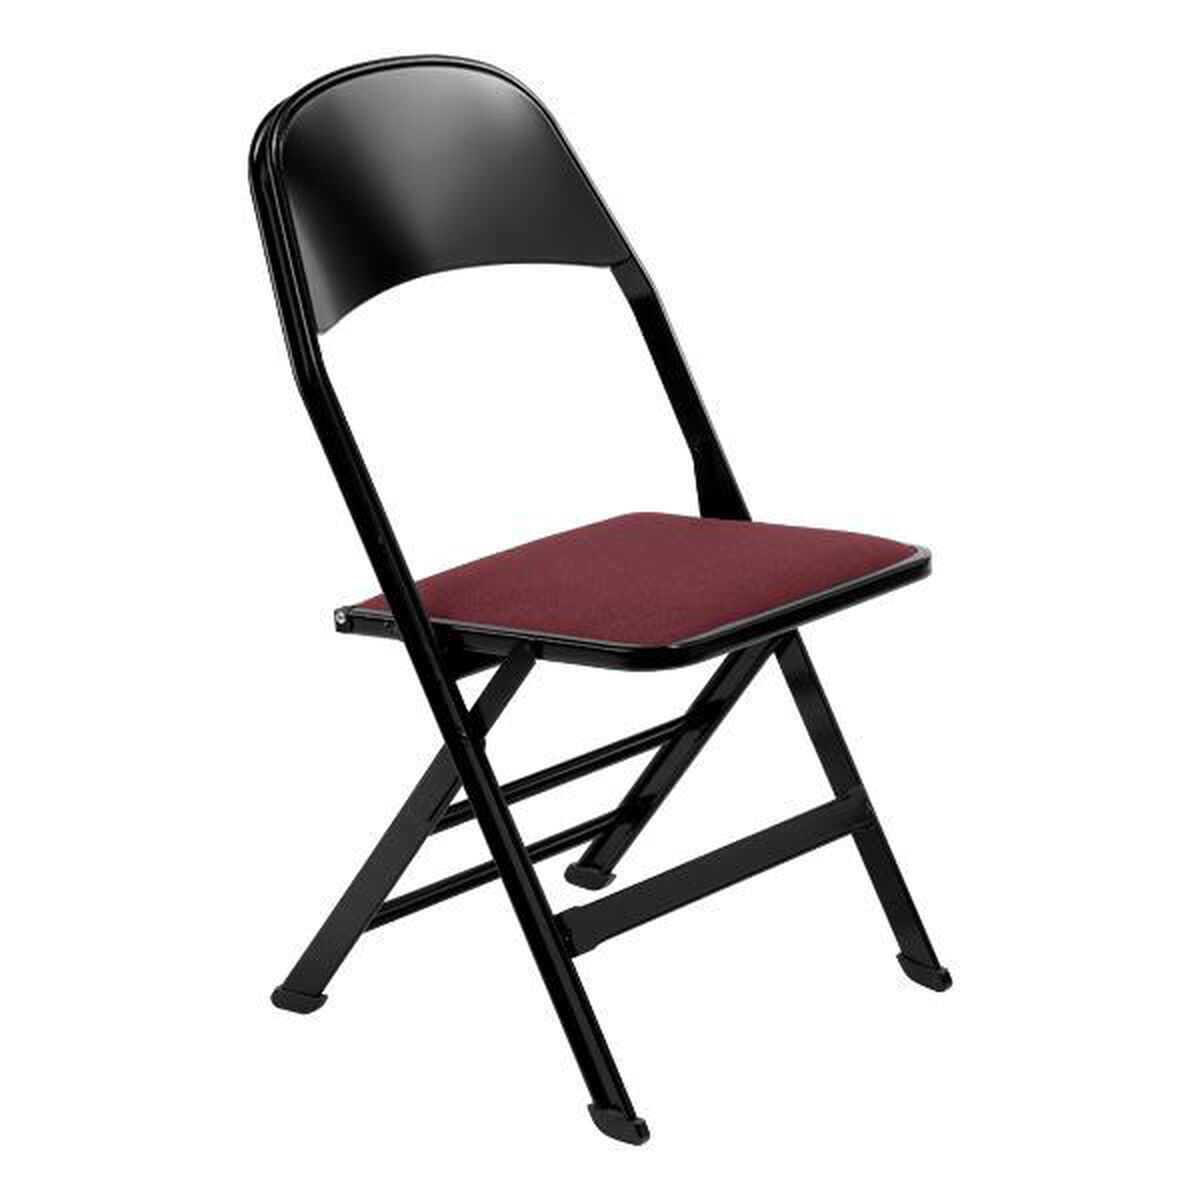 Missoni Home Ambrogina Folding Chair In Printed Satin: Fabric Upholstered Folding Chair 2517-FABRIC